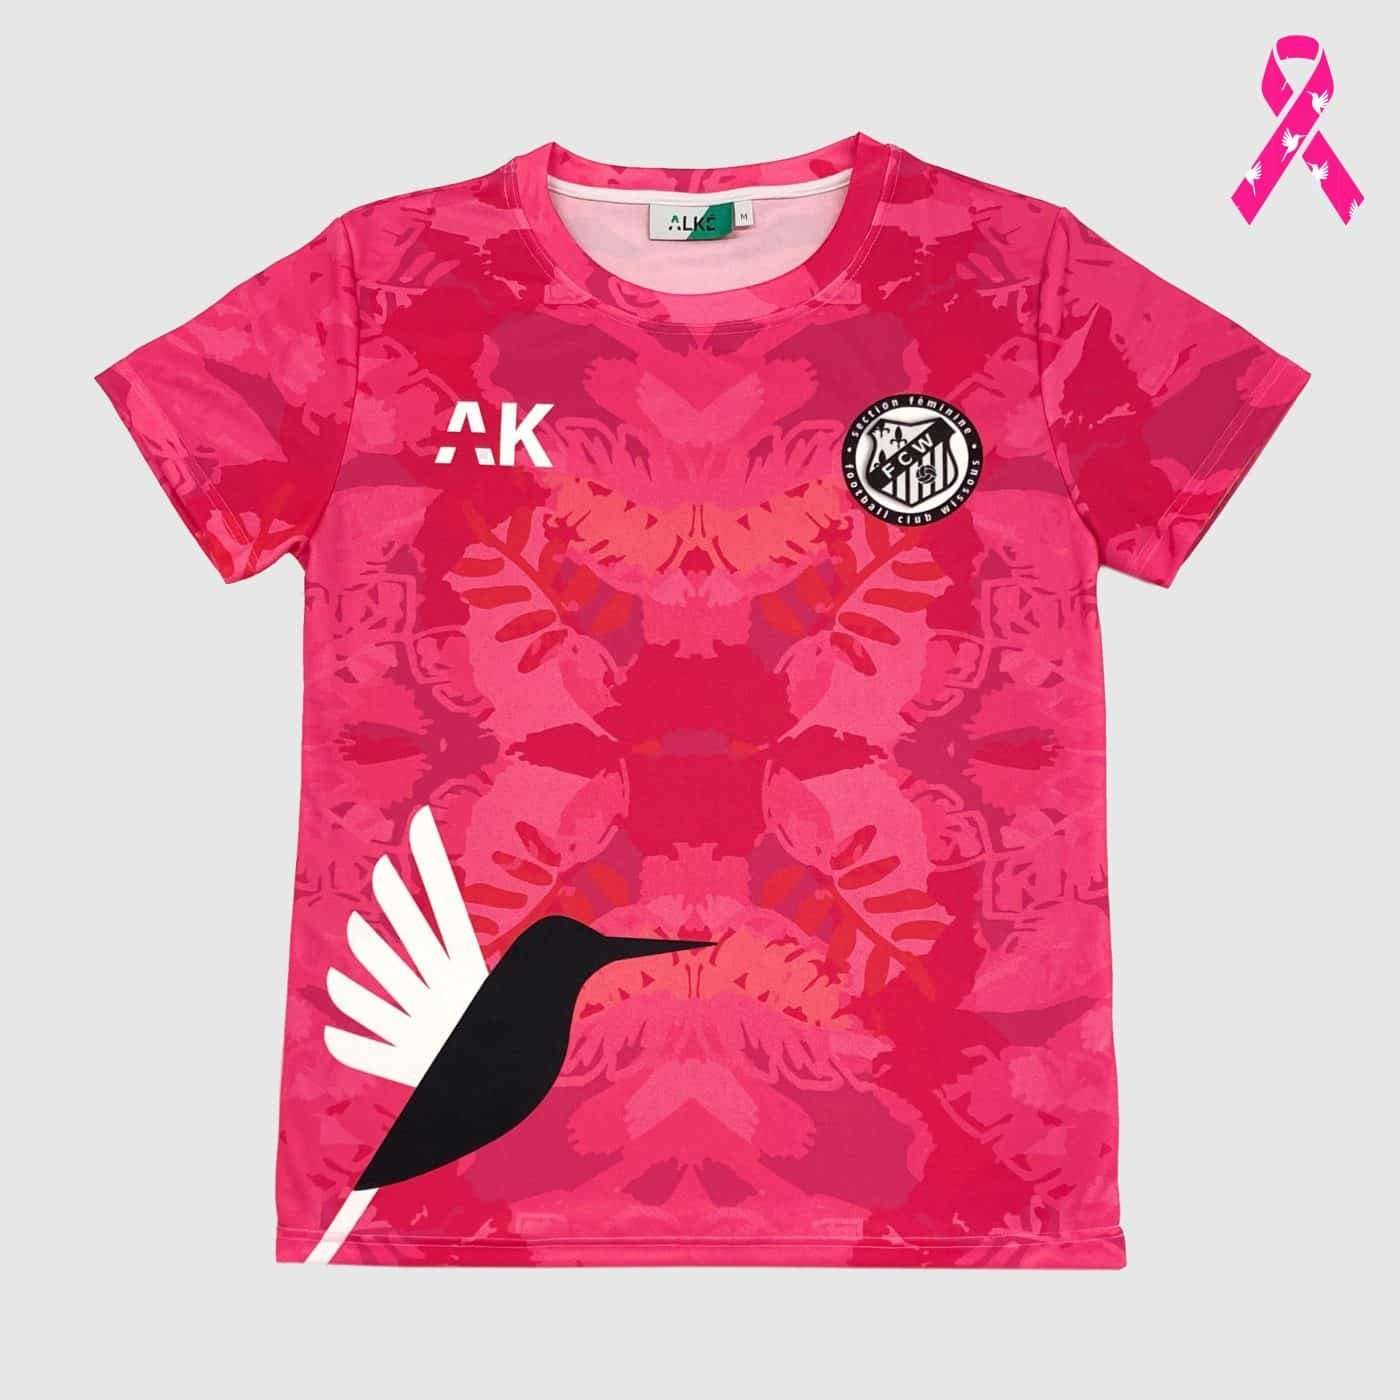 maillot-octobre-rose-alke-3